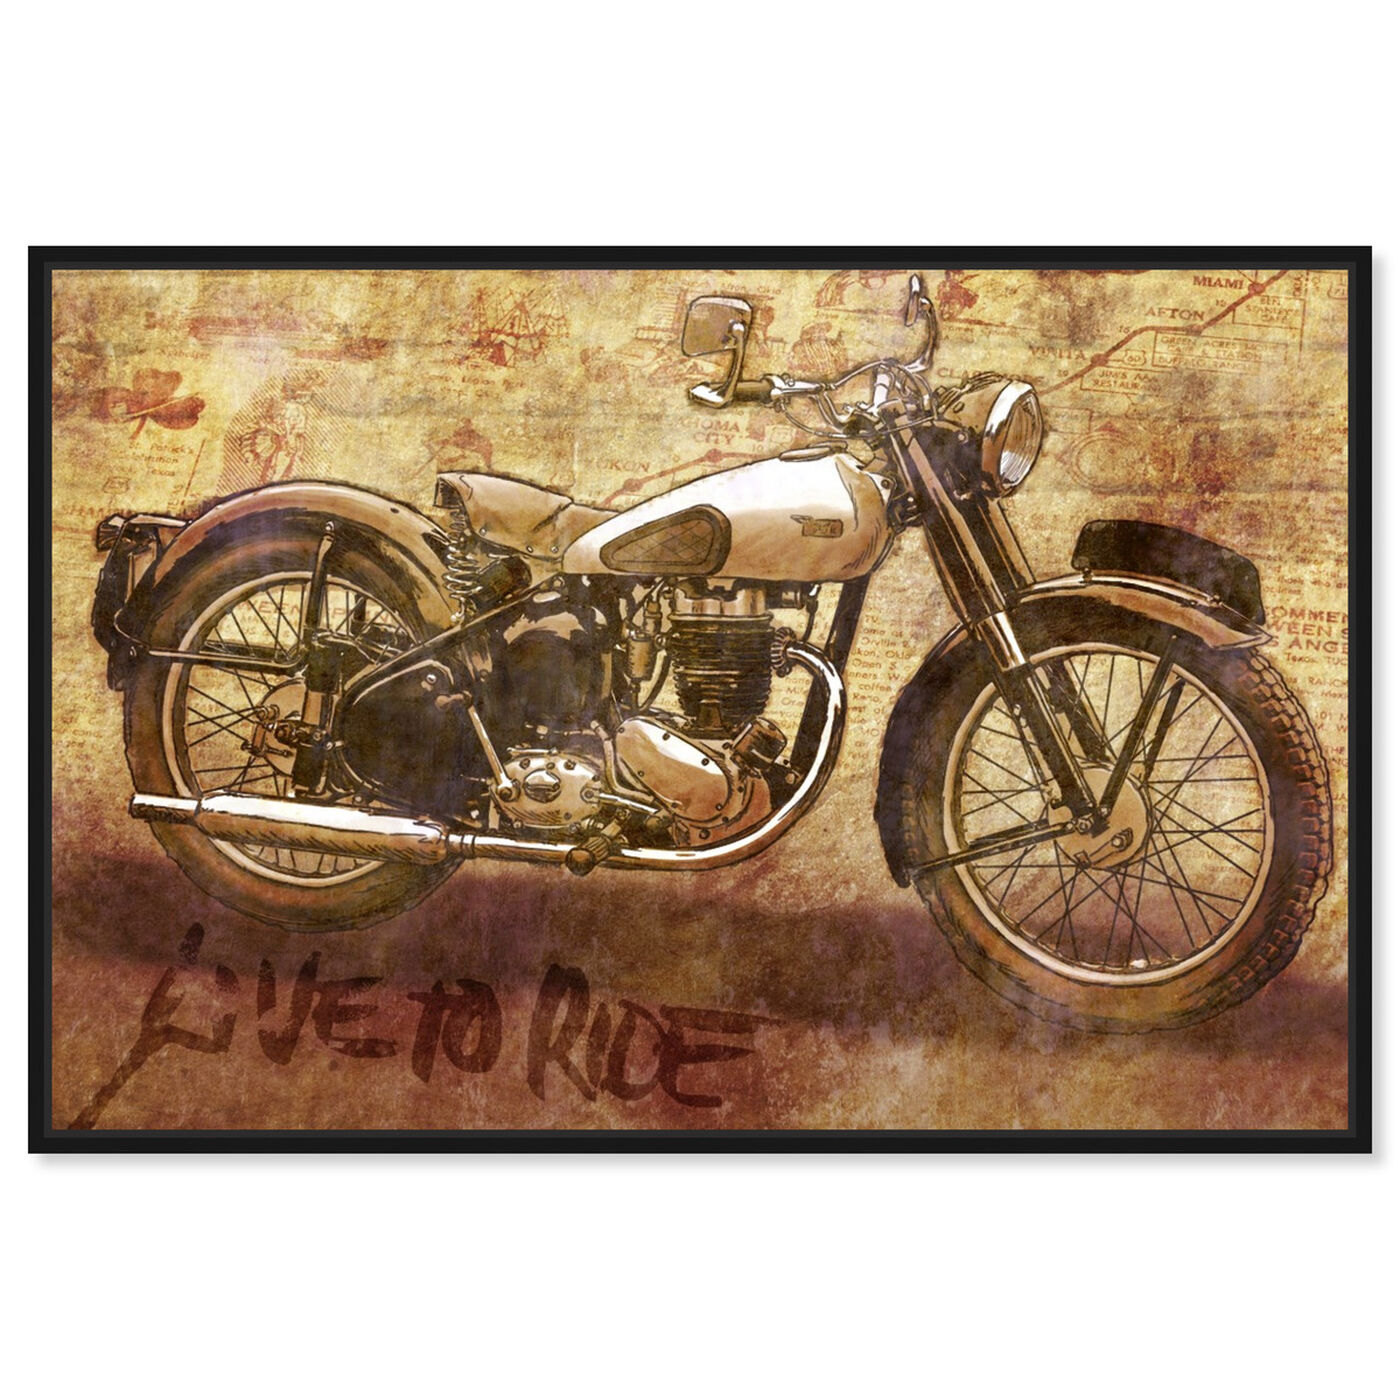 Front view of Live to Ride featuring transportation and motorcycles art.